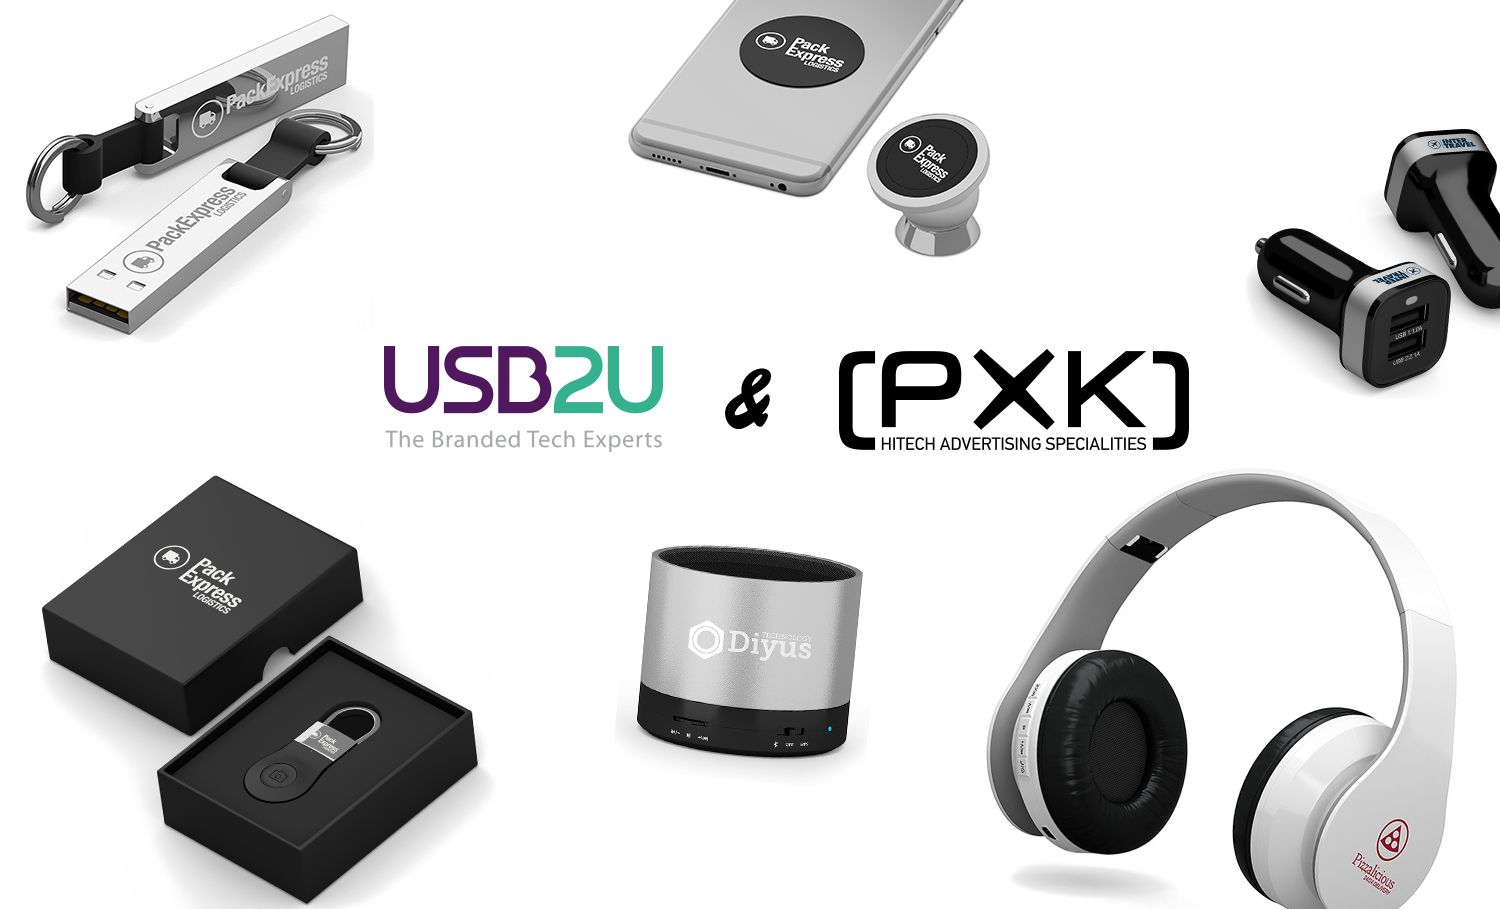 USB2U offering Pixika products in the UK